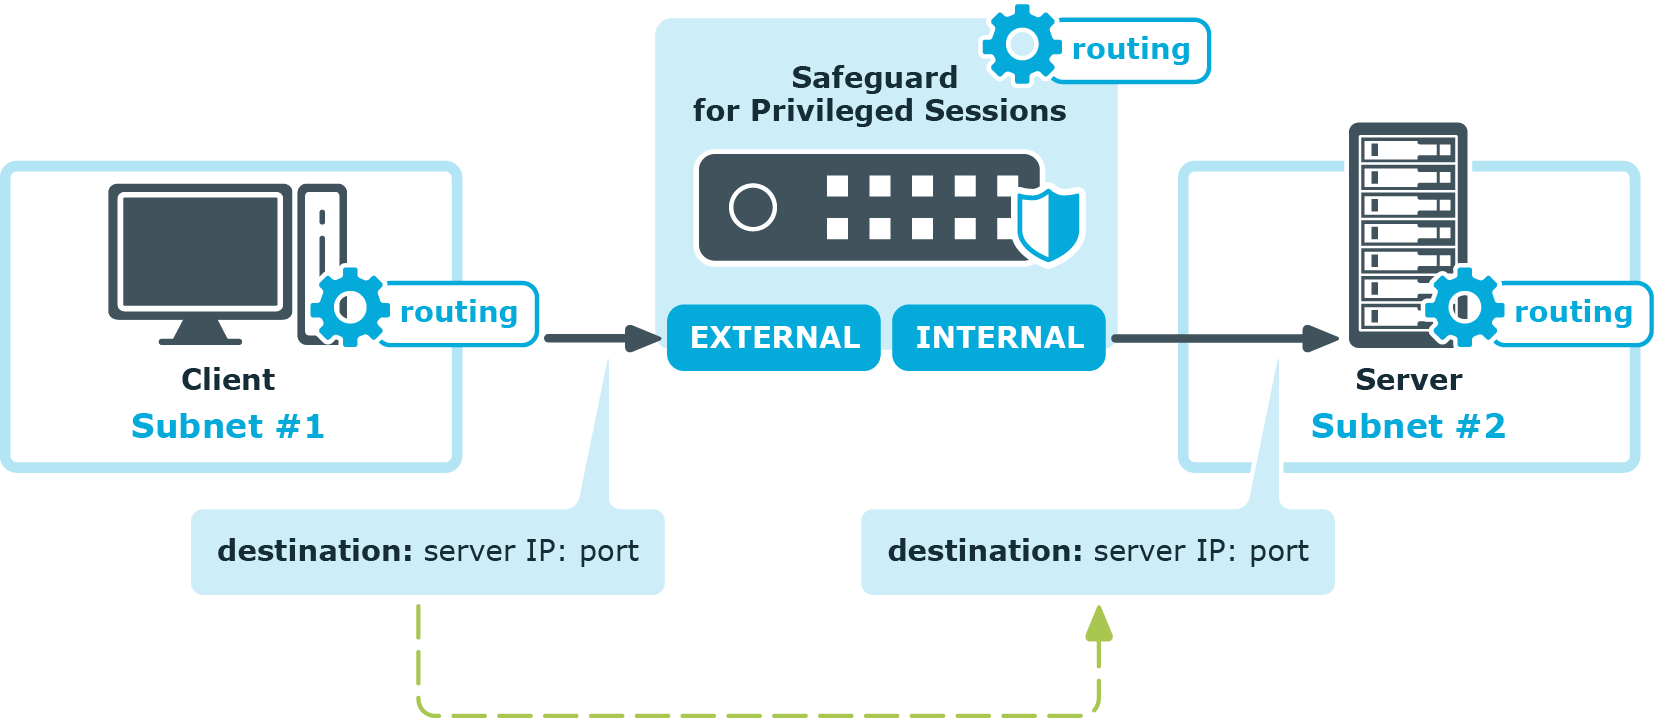 One Identity Safeguard for Privileged Sessions 5 11 0